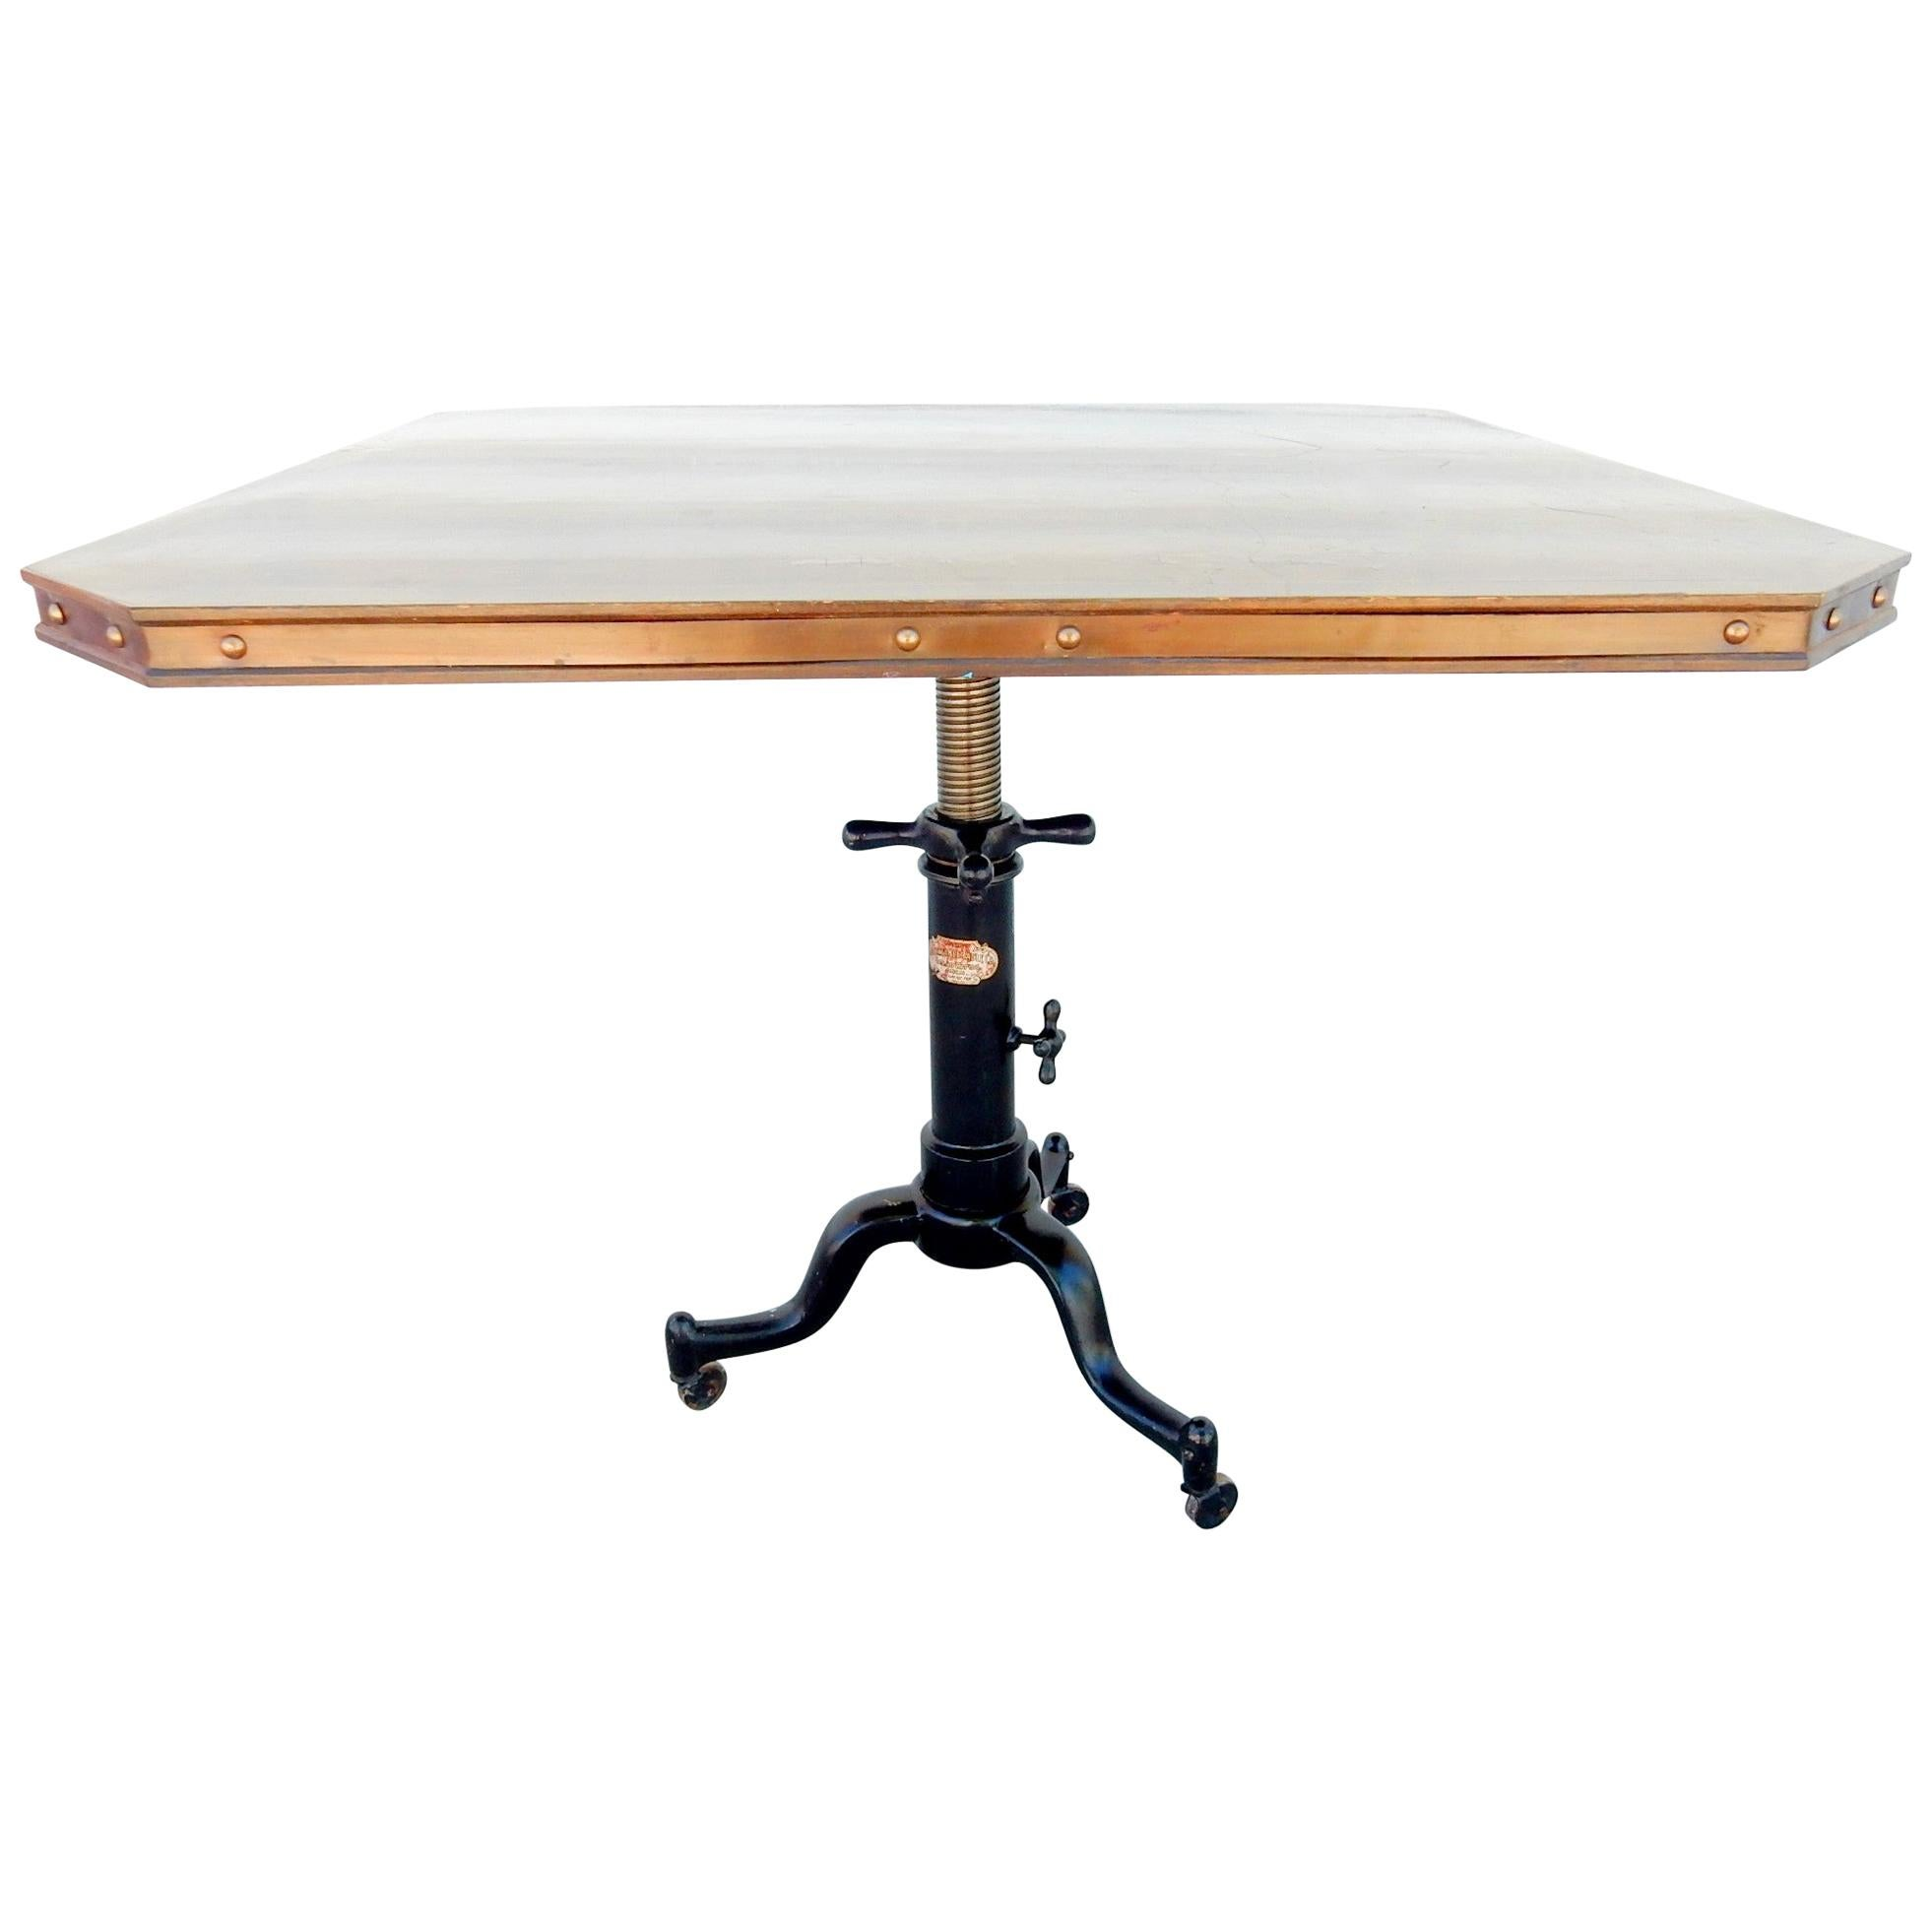 1920s Industrial Machine Age Adjustable Base Dining Cafe Table